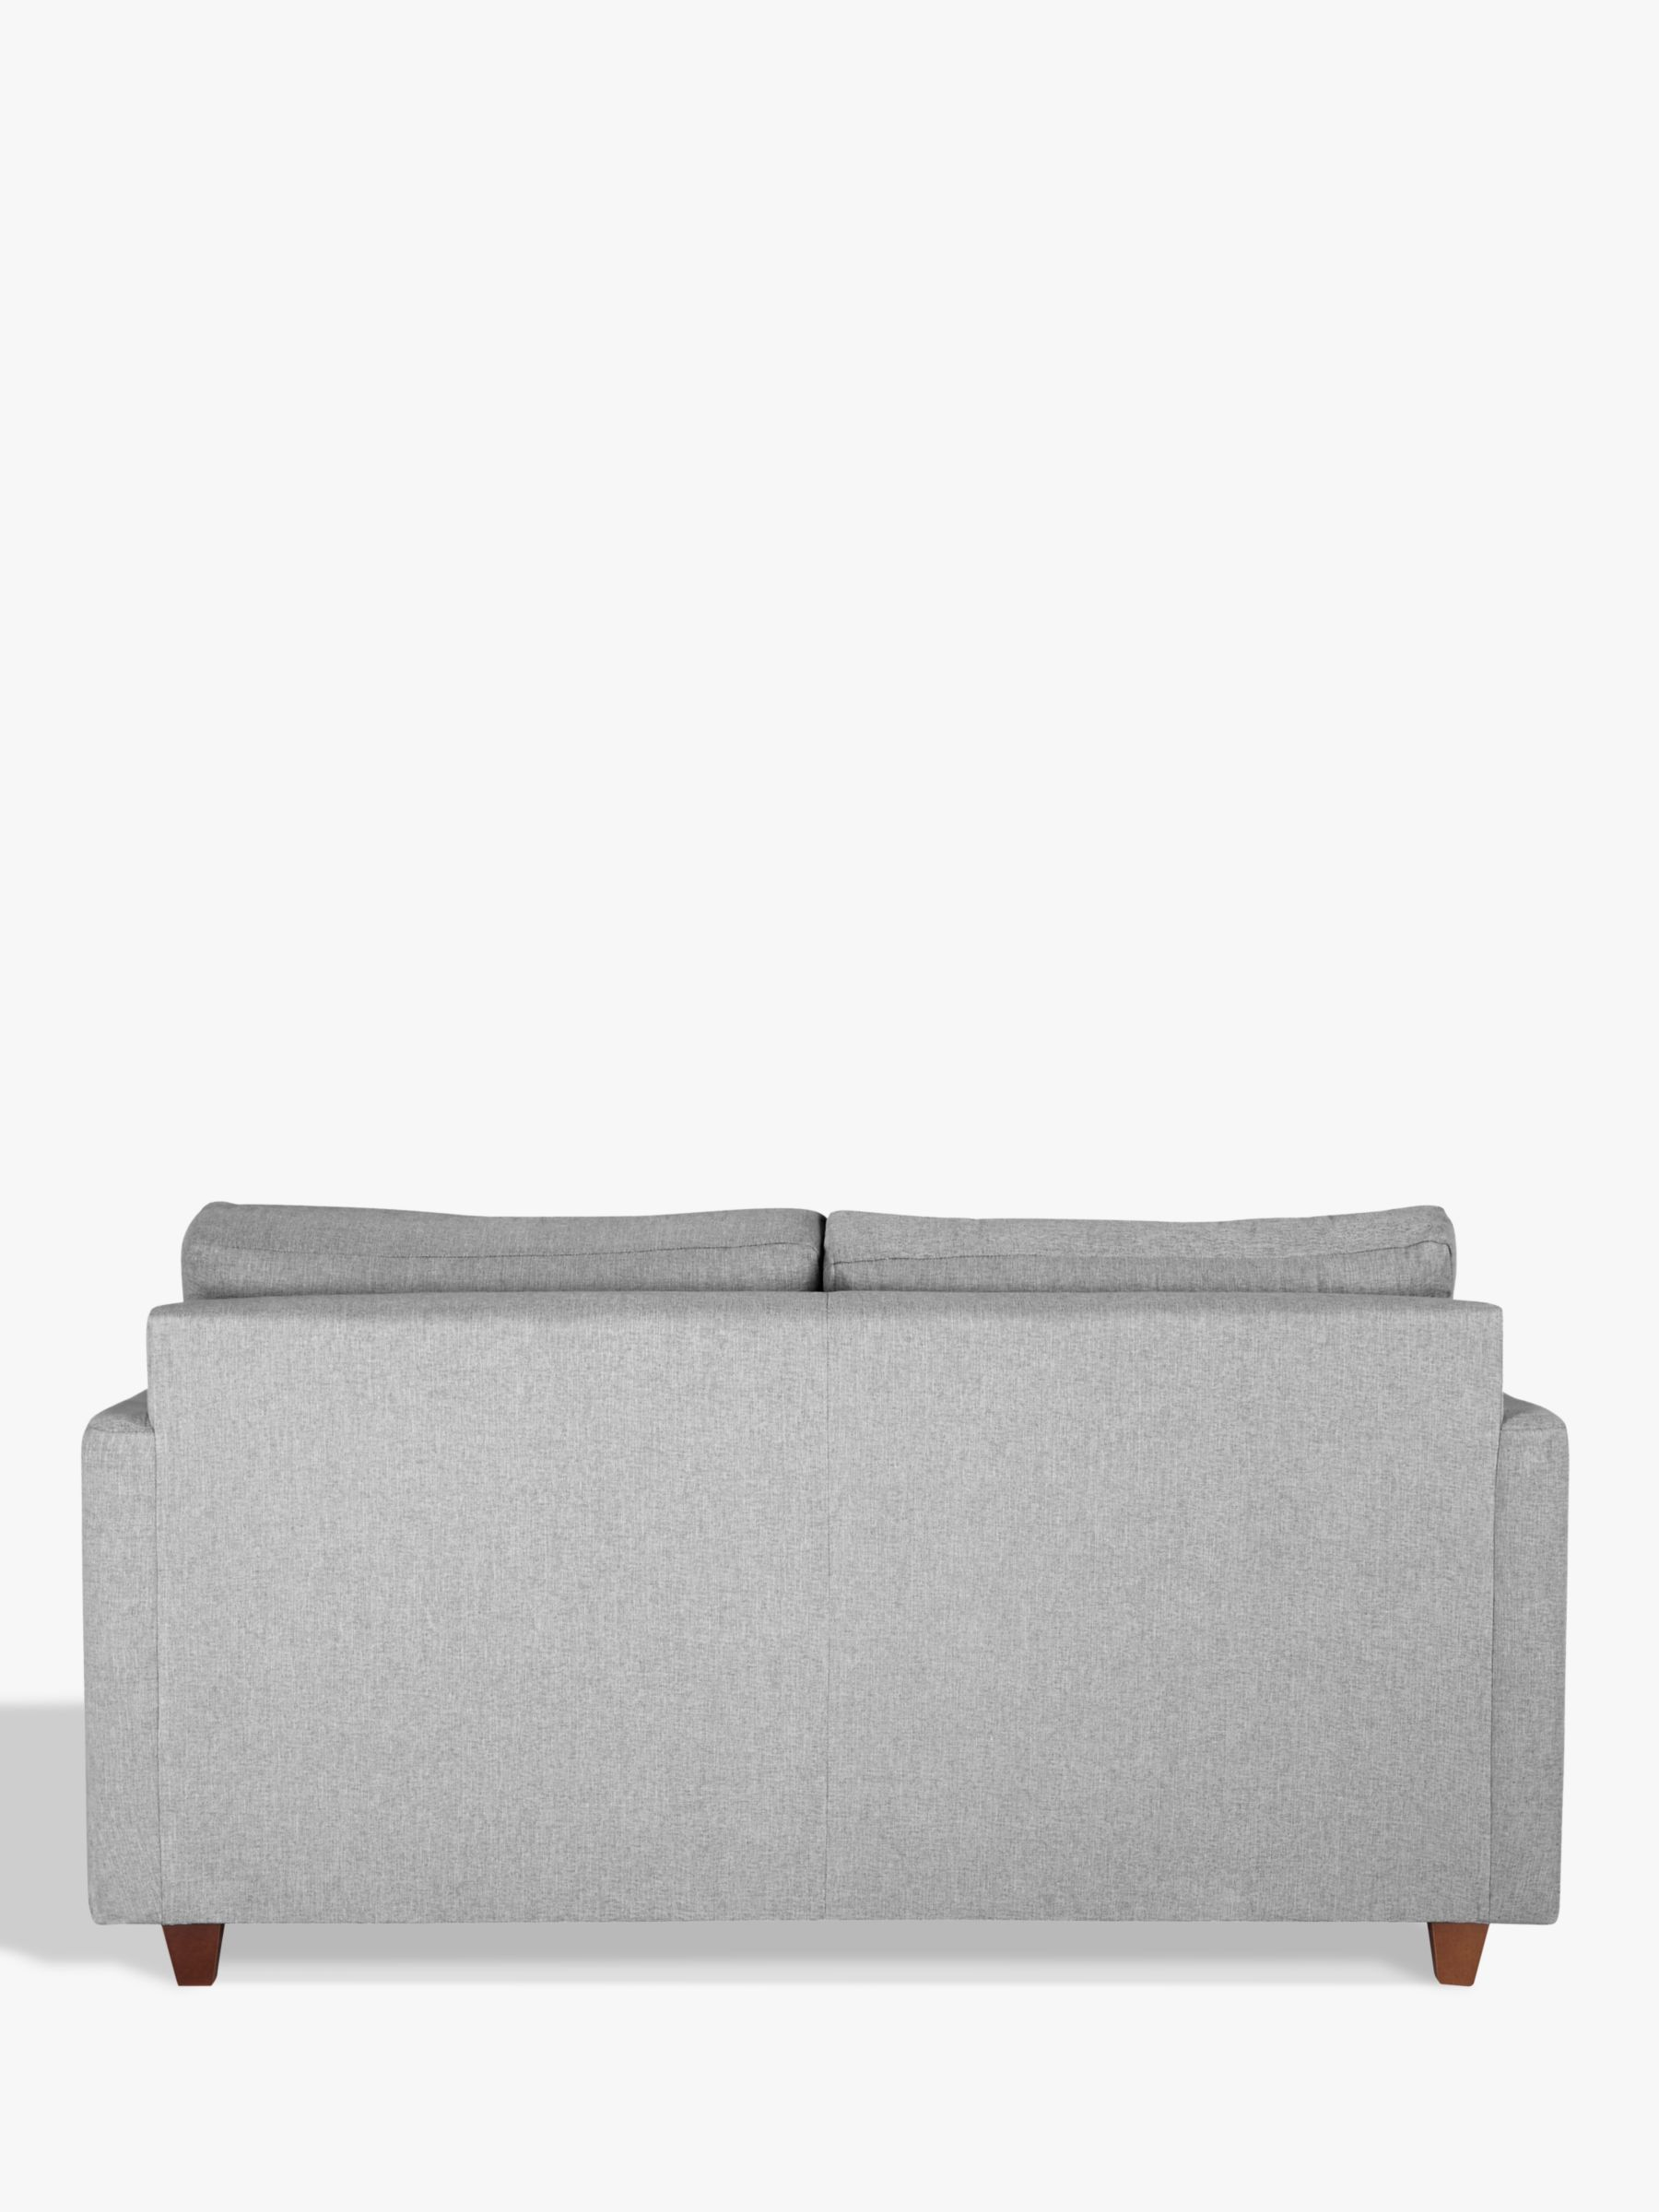 Design Small Sofa buy john lewis barlow 2 seater small sofa bed with pocket sprung mattress erin midnight